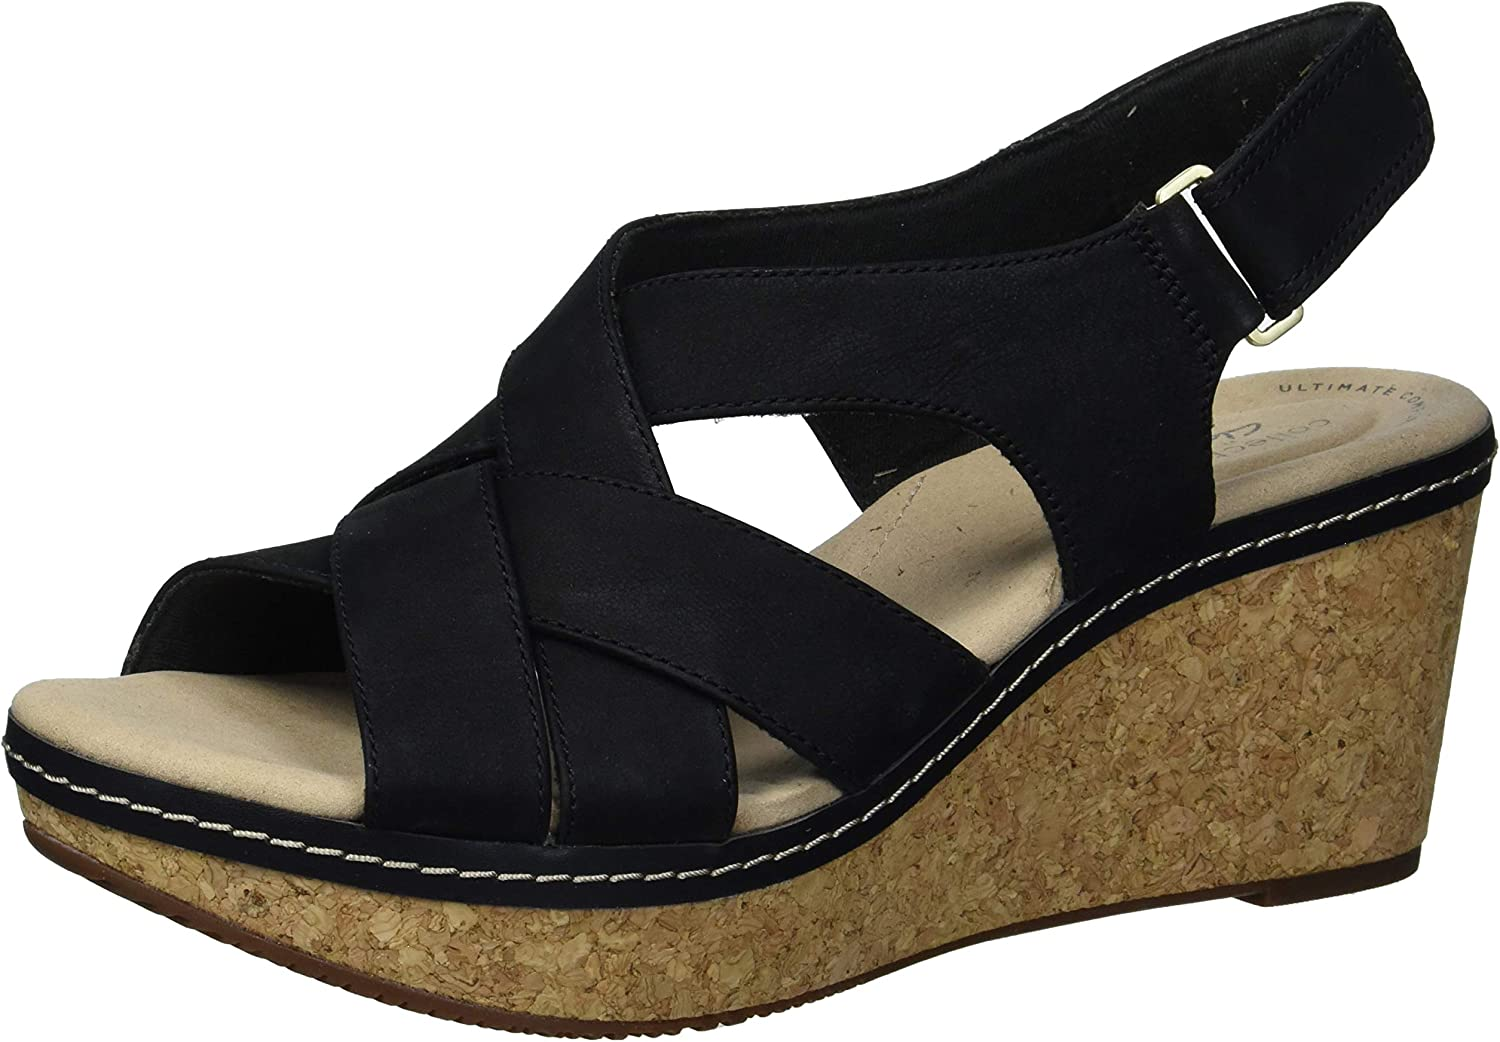 Clarks Women's Annadel Wedge Manufacturer direct delivery Pearl unisex Sandal